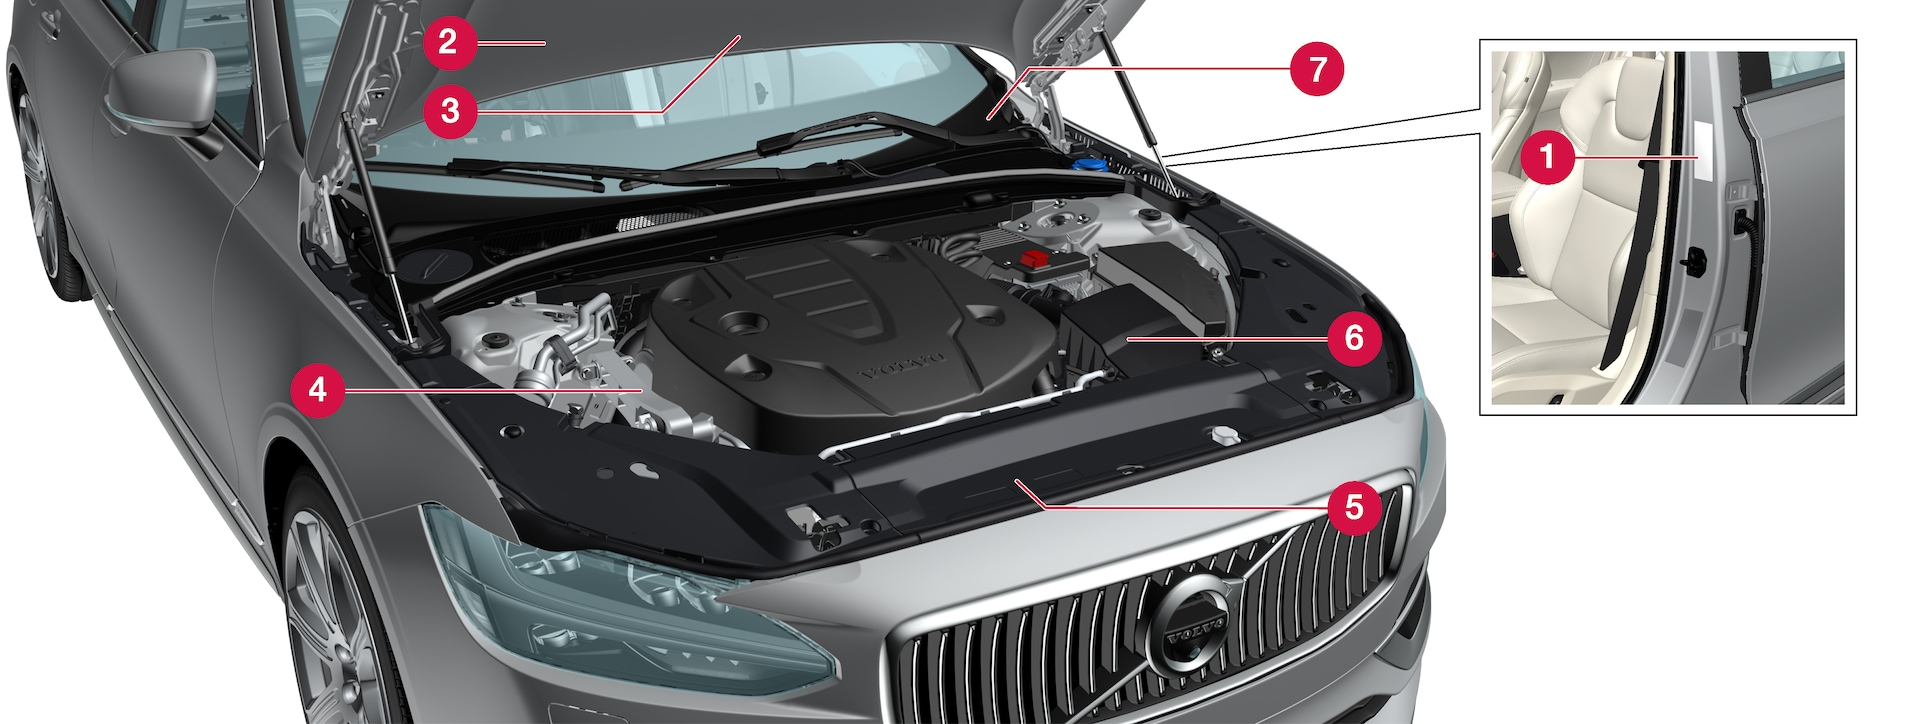 P5-1617-S90-V90-Type approval, labels, vehicles for Saudi Arabia